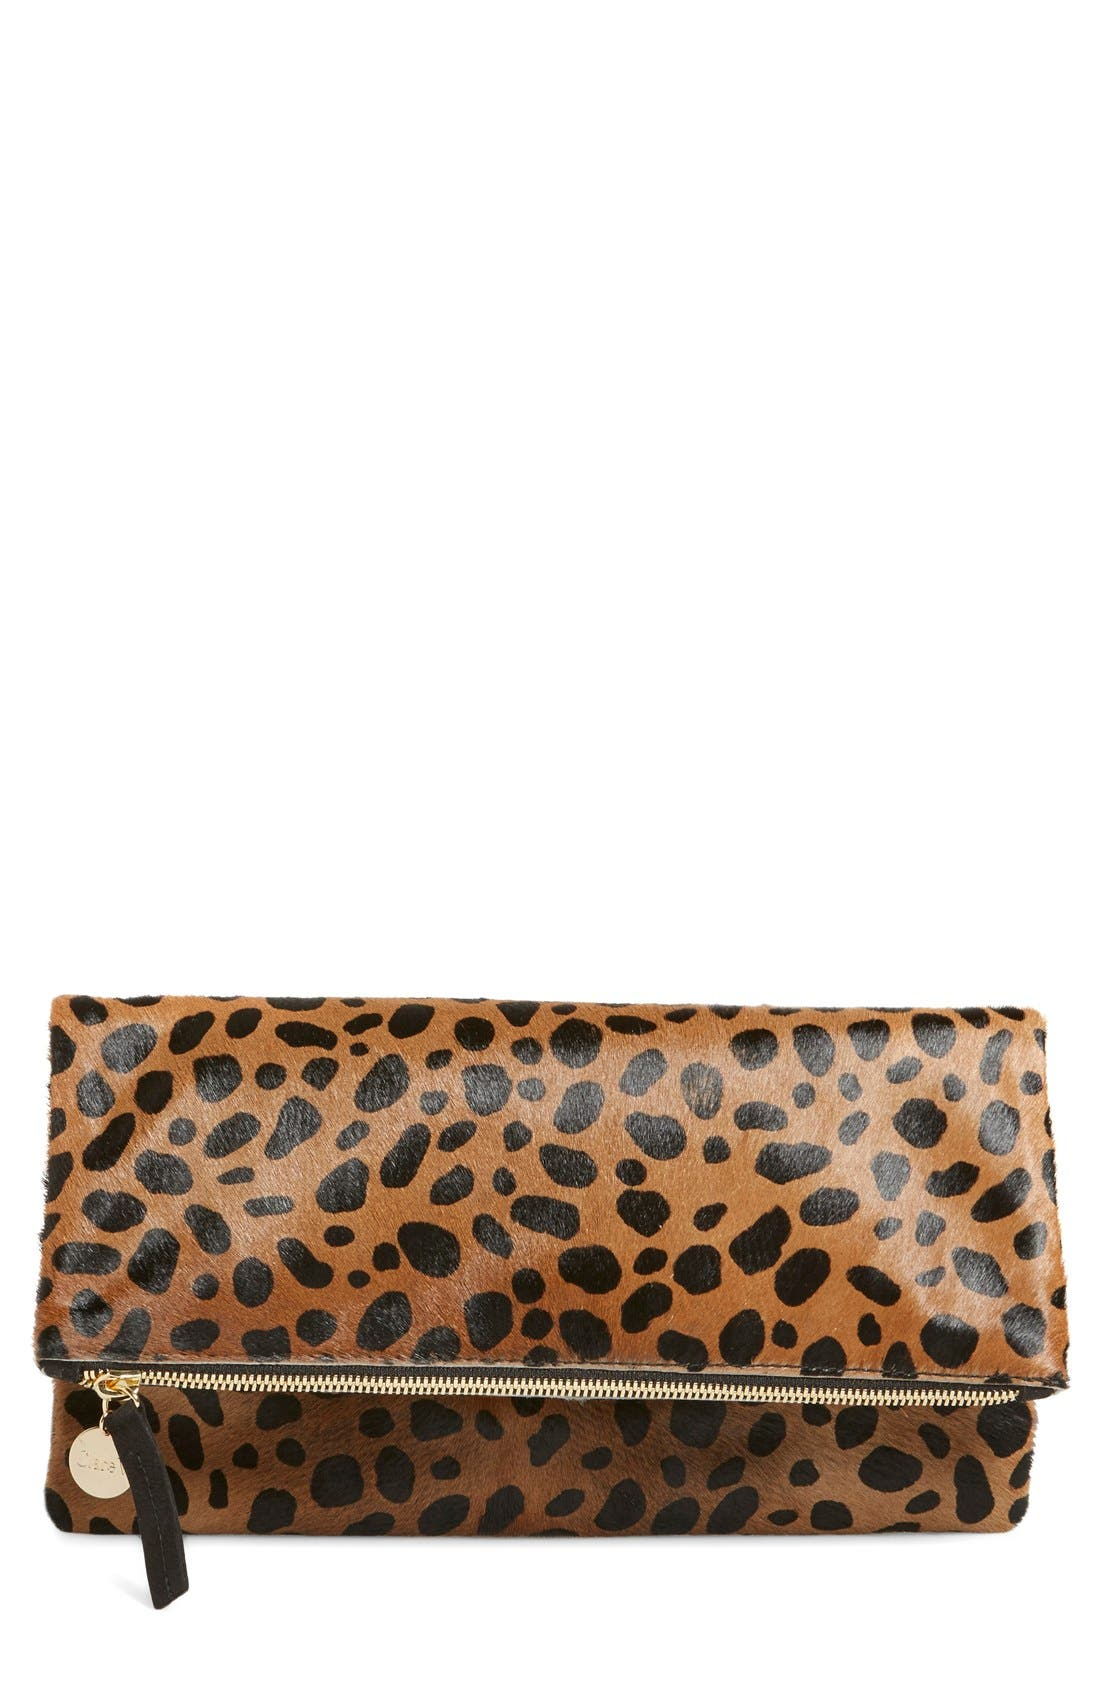 Main Image - Clare V. Genuine Calf Hair Leopard Print Foldover Clutch